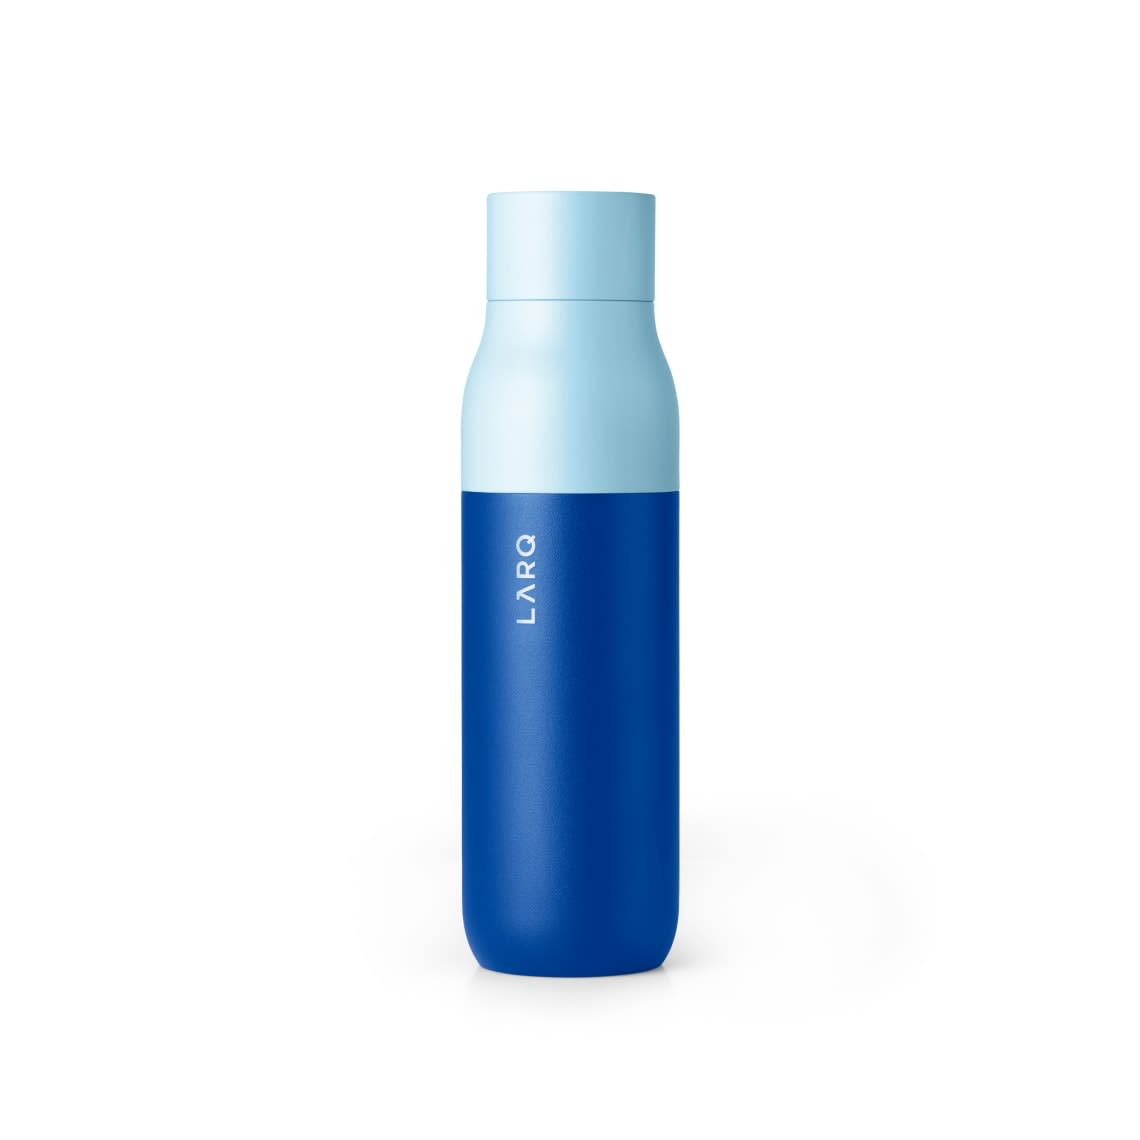 LARQ Bottle PureVis - DG23 Edition